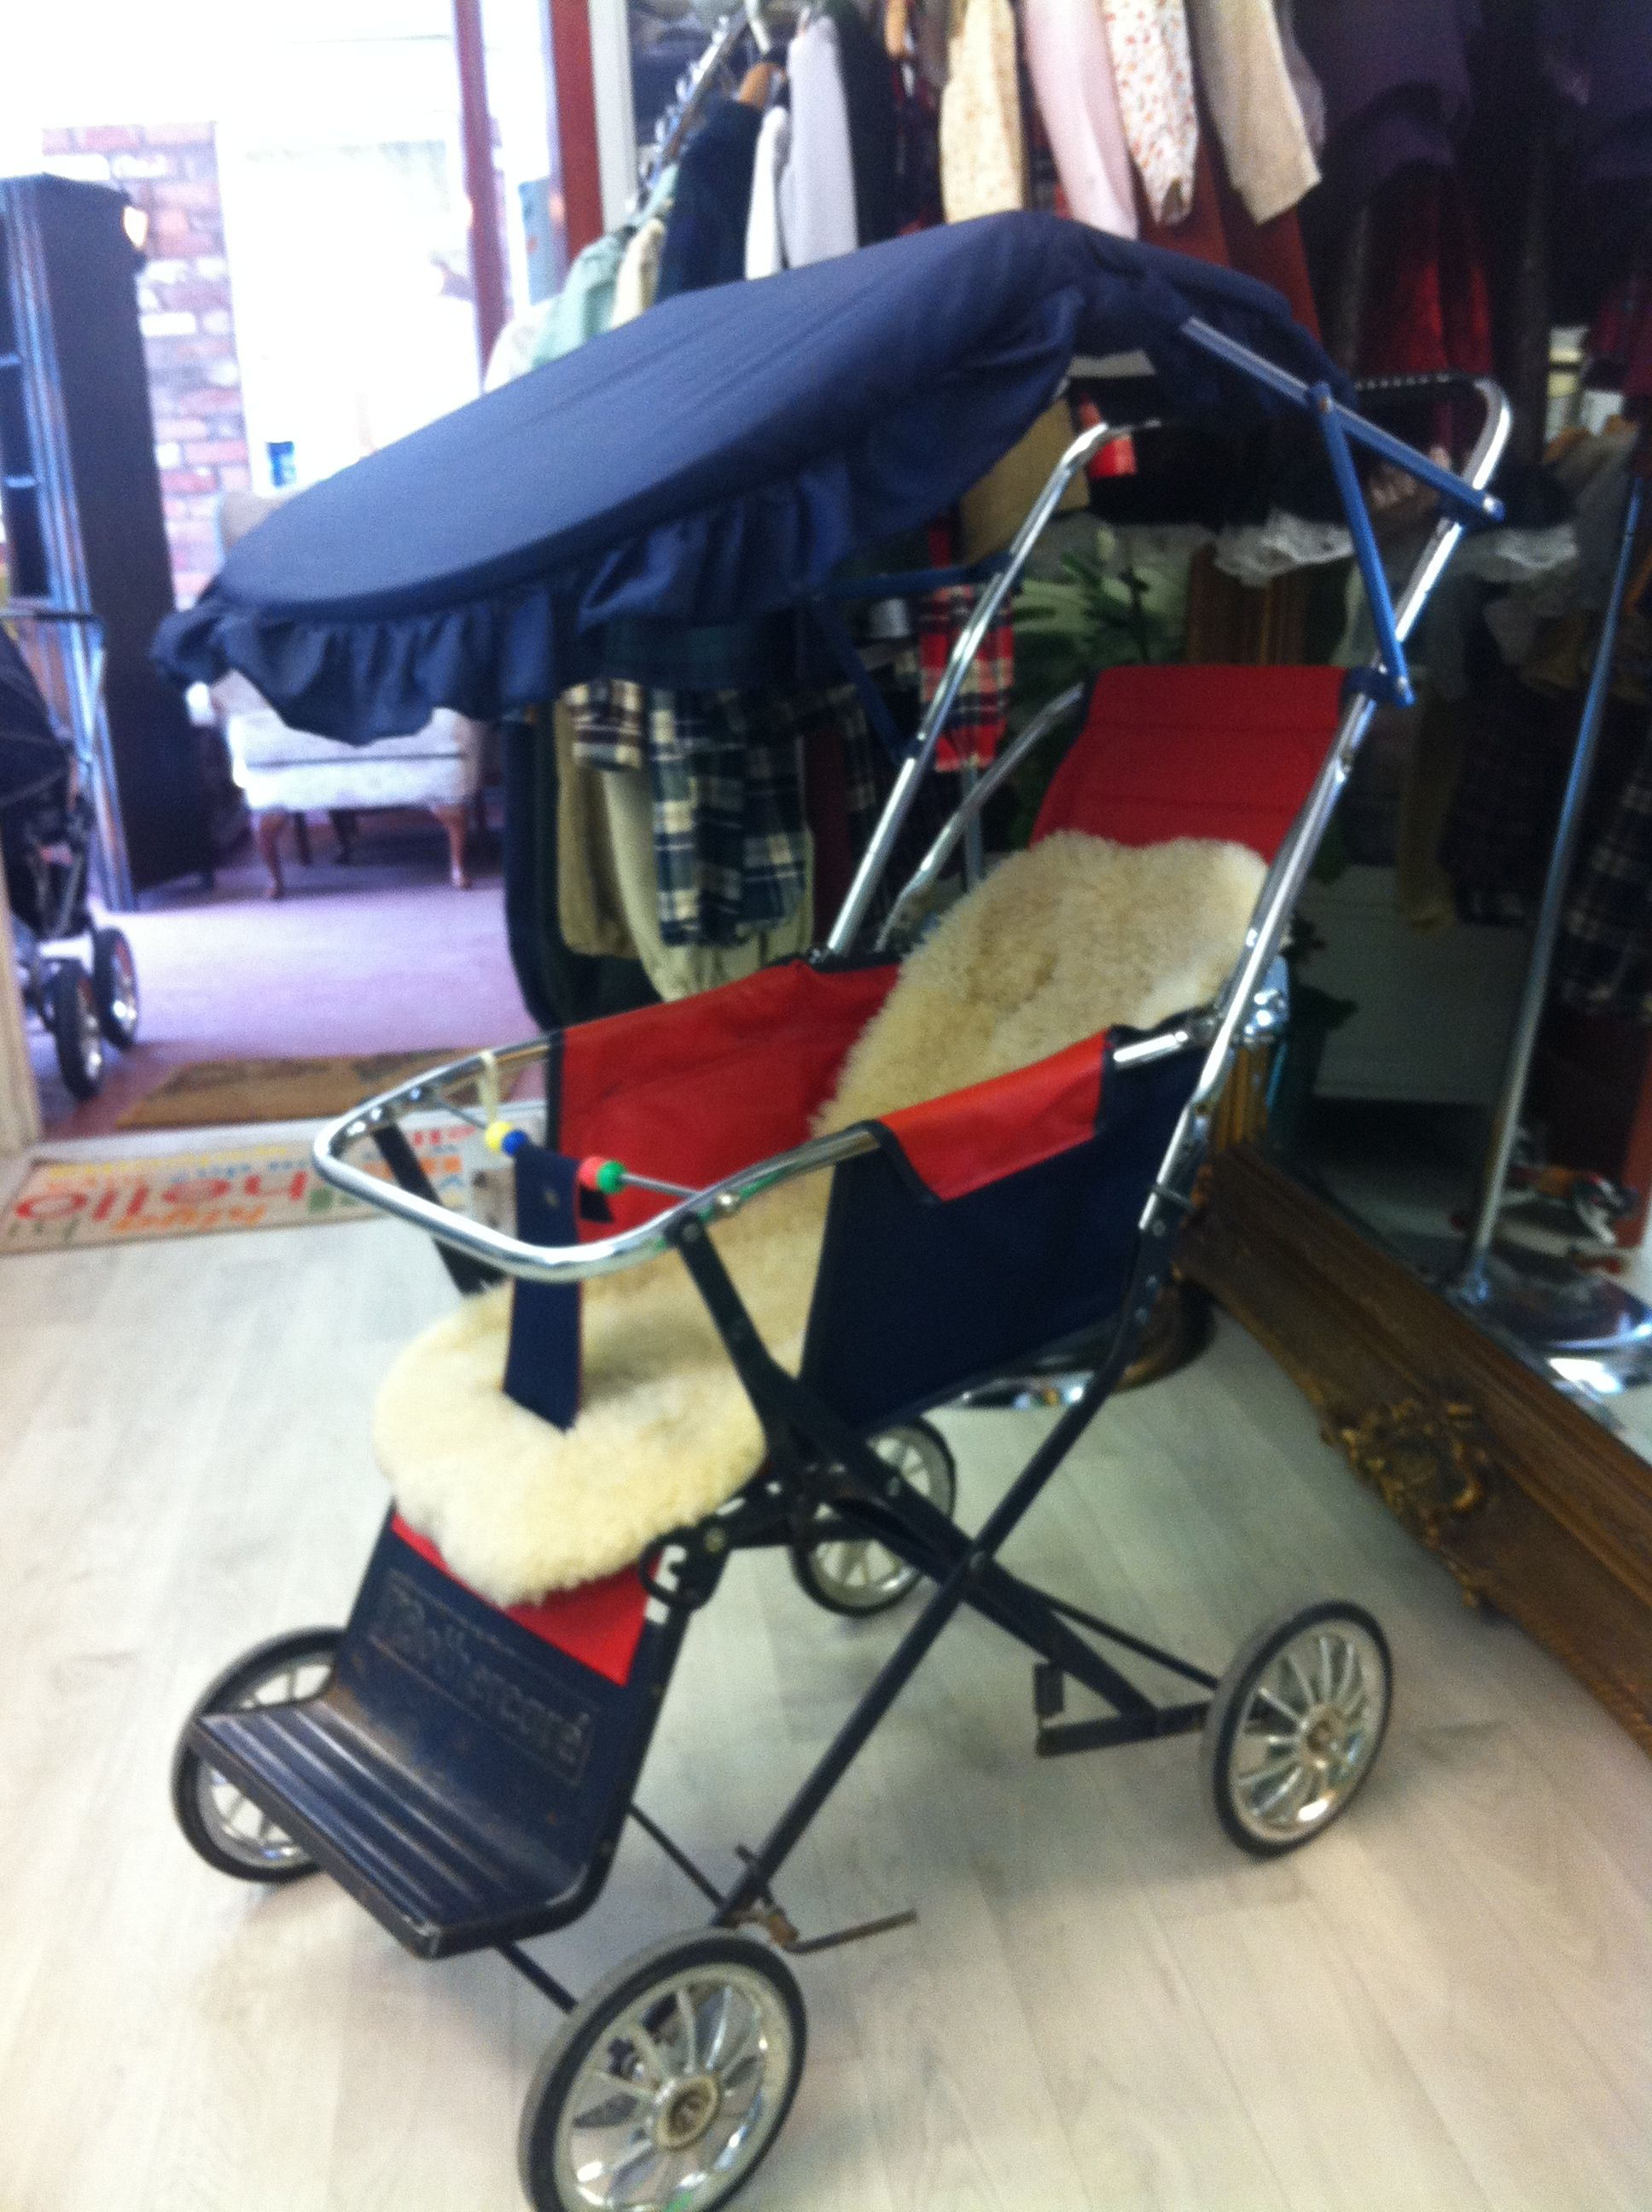 Mothercare Pushchair Pram Vintage Mothercare Pushchair In Navy And Red With